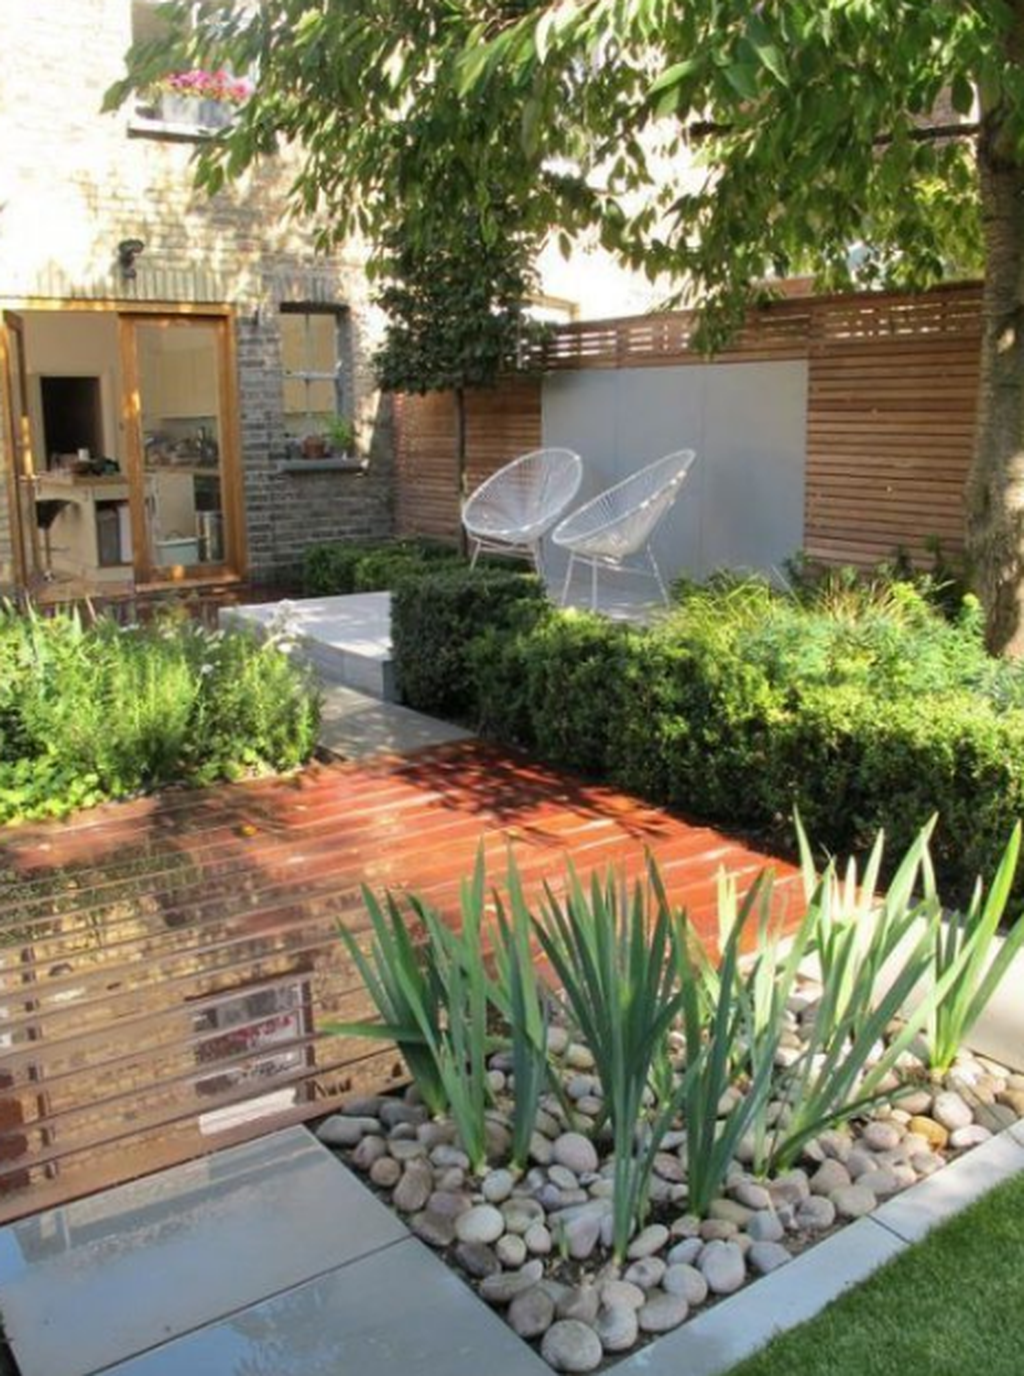 The Best Minimalist Garden Design Ideas You Have To Try 02 Pimphomee